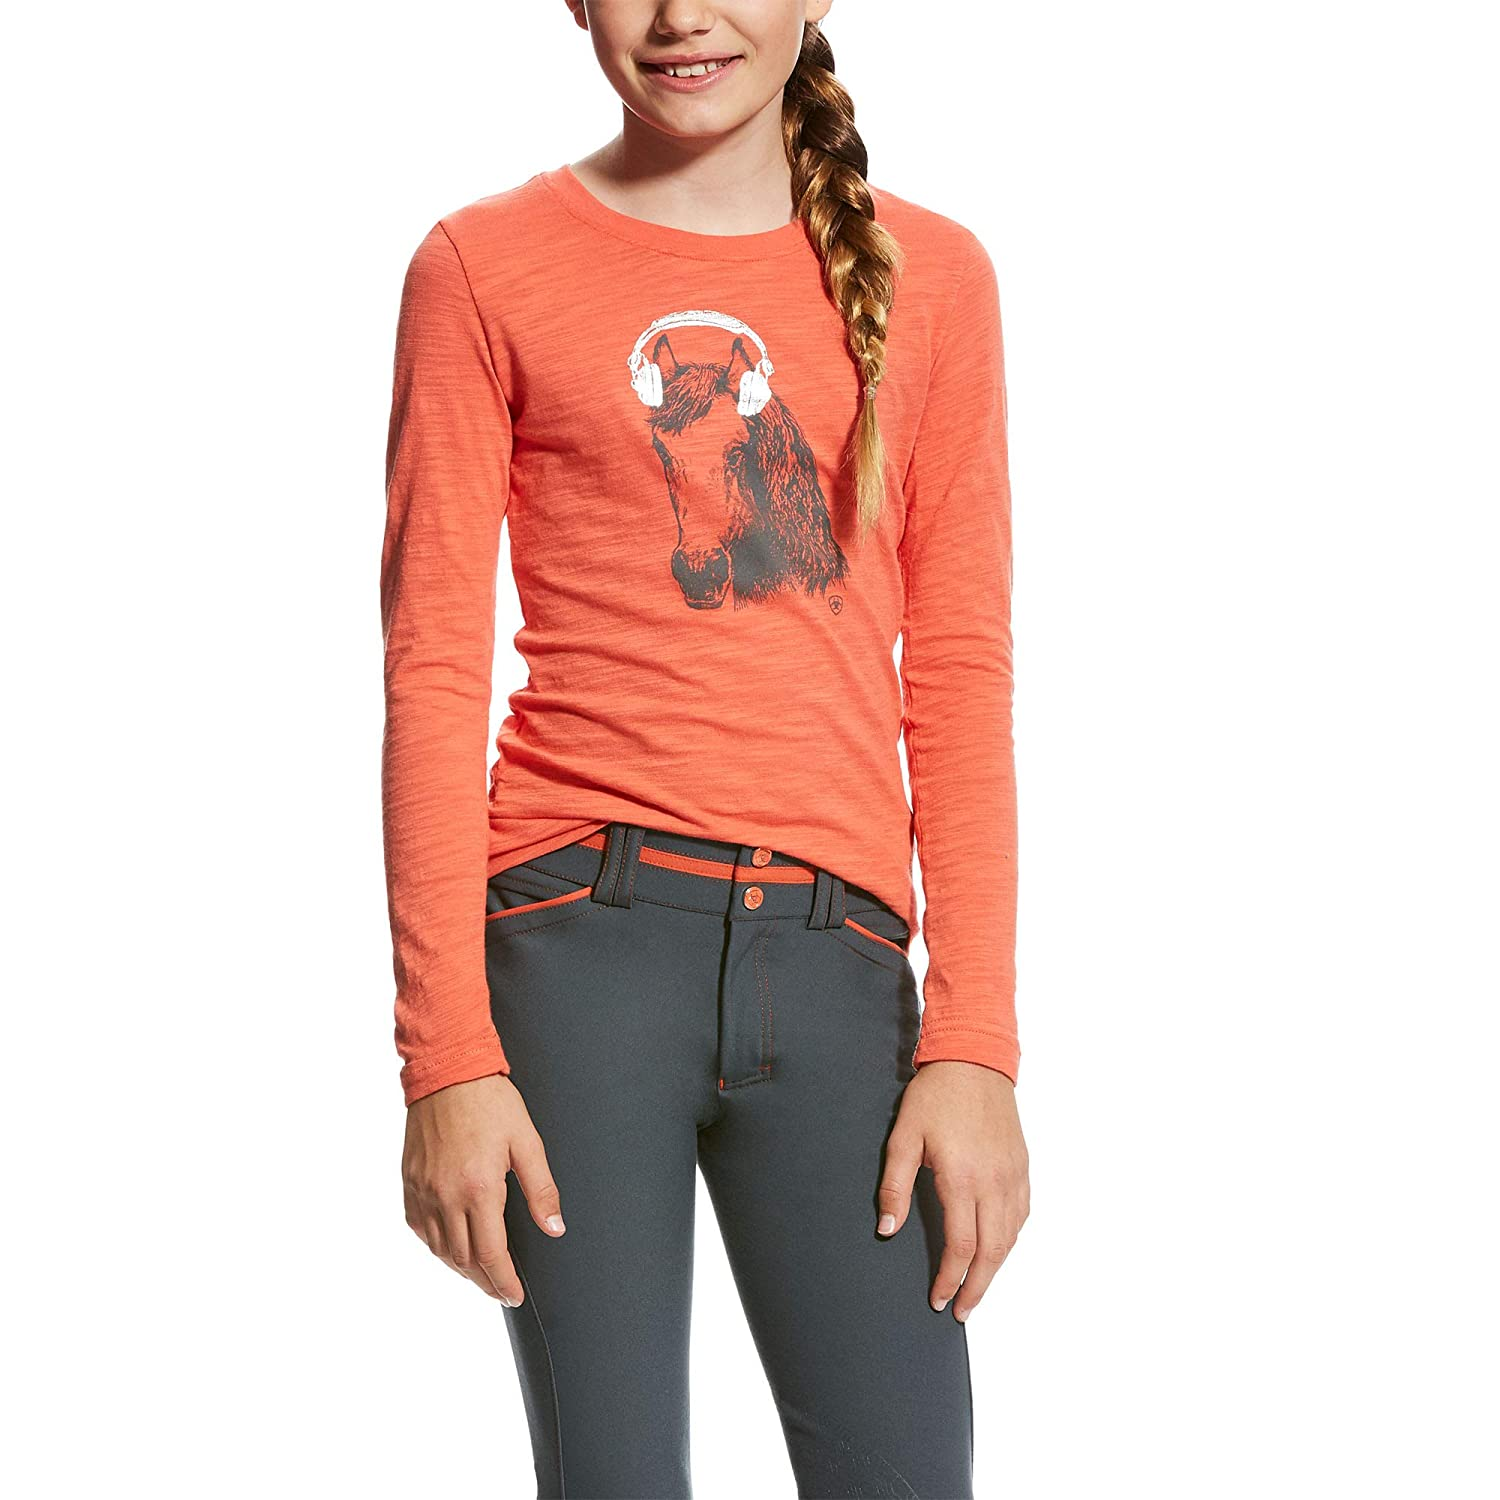 Ariat Girls Mixer Tee Calypso Coral